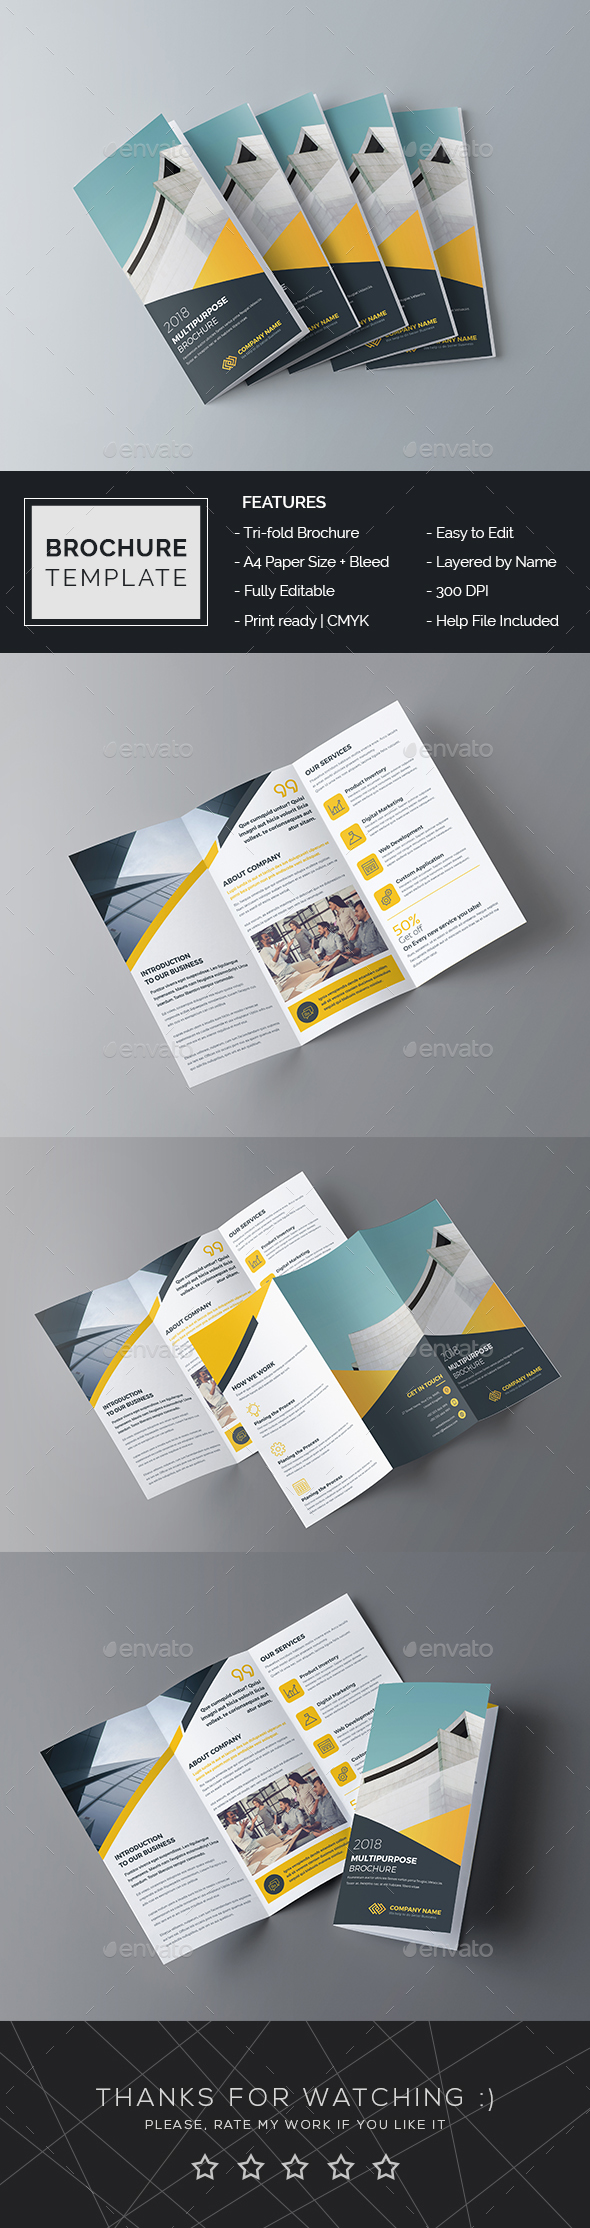 Trifold Brochure InDesign Template - Brochures Print Templates